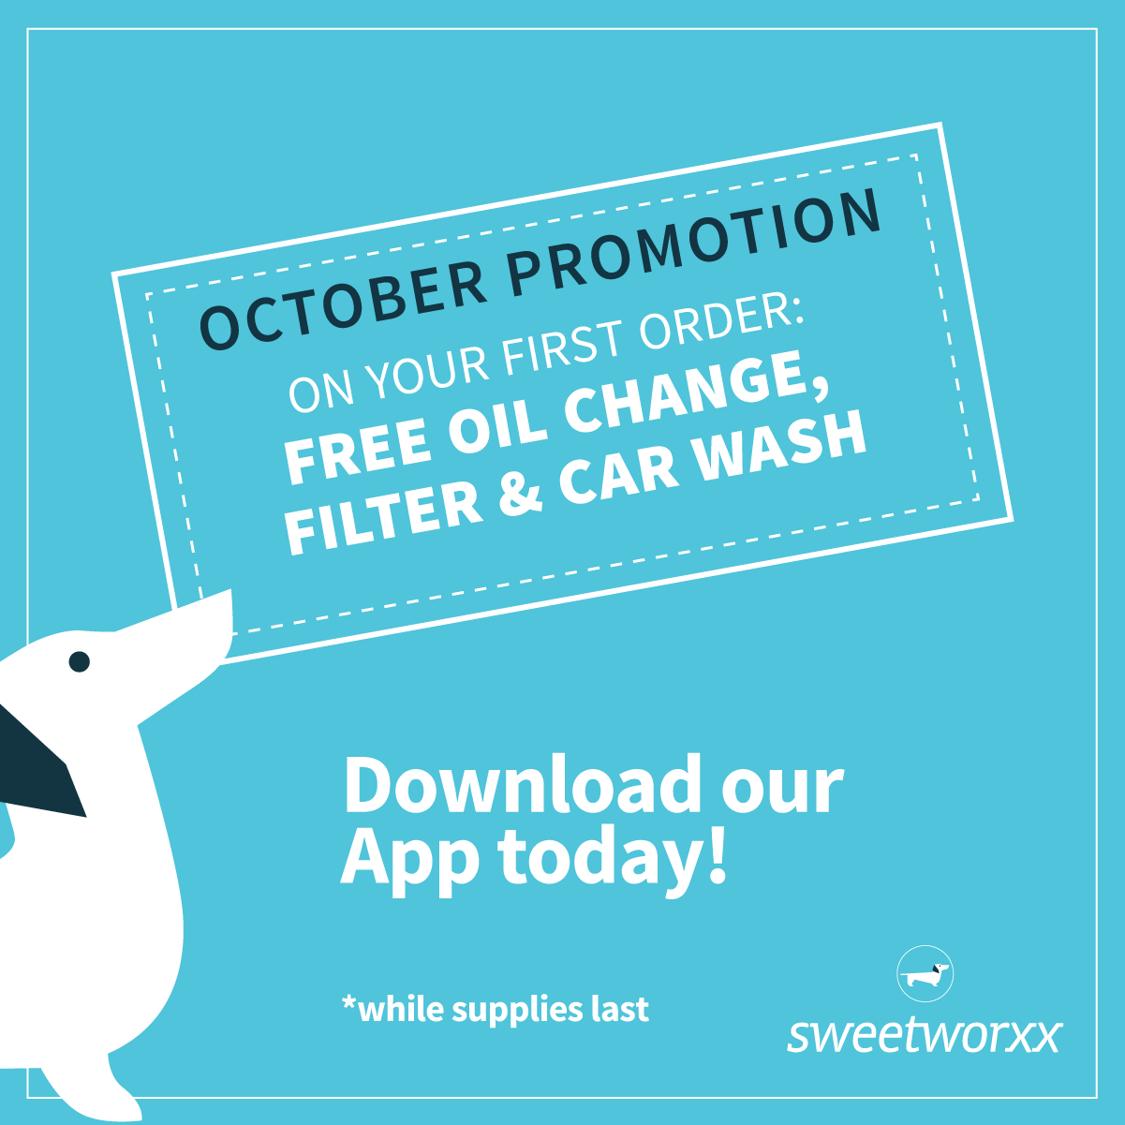 Sweetworxx October Promotion FREE Oil Change Filter and Car Wash